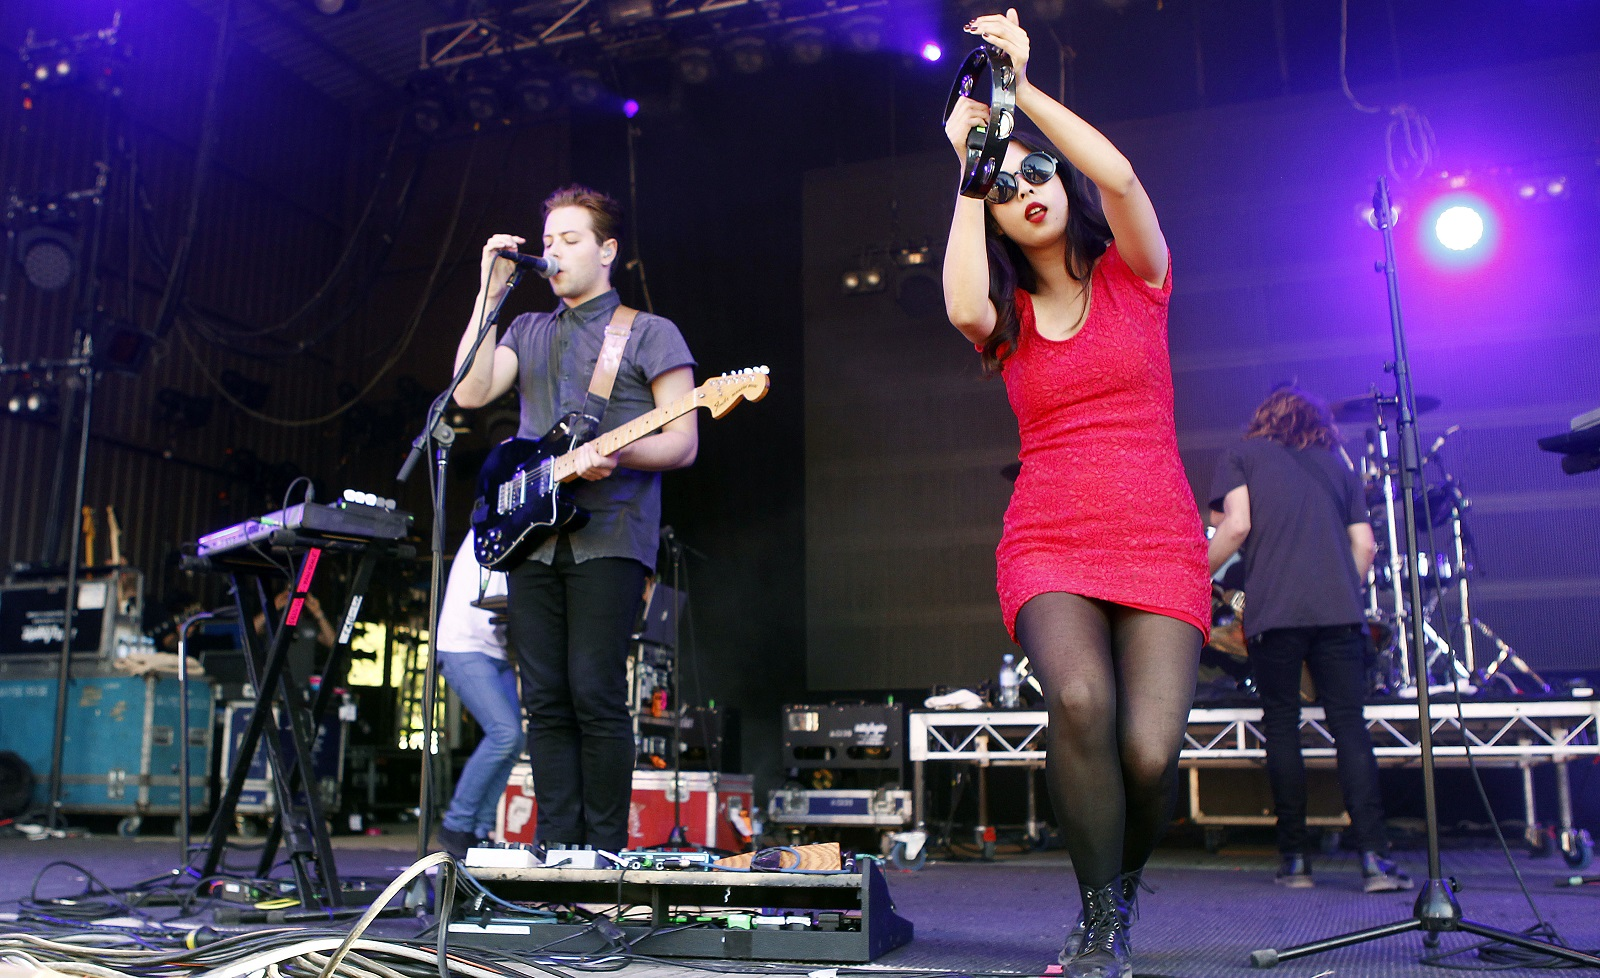 Thom Powers and Alisa Xayalith of The Naked And Famous, pictured performing in the Falls Music Festival in 2011 in Australia, have planned a Buffalo stop. (Getty Images)